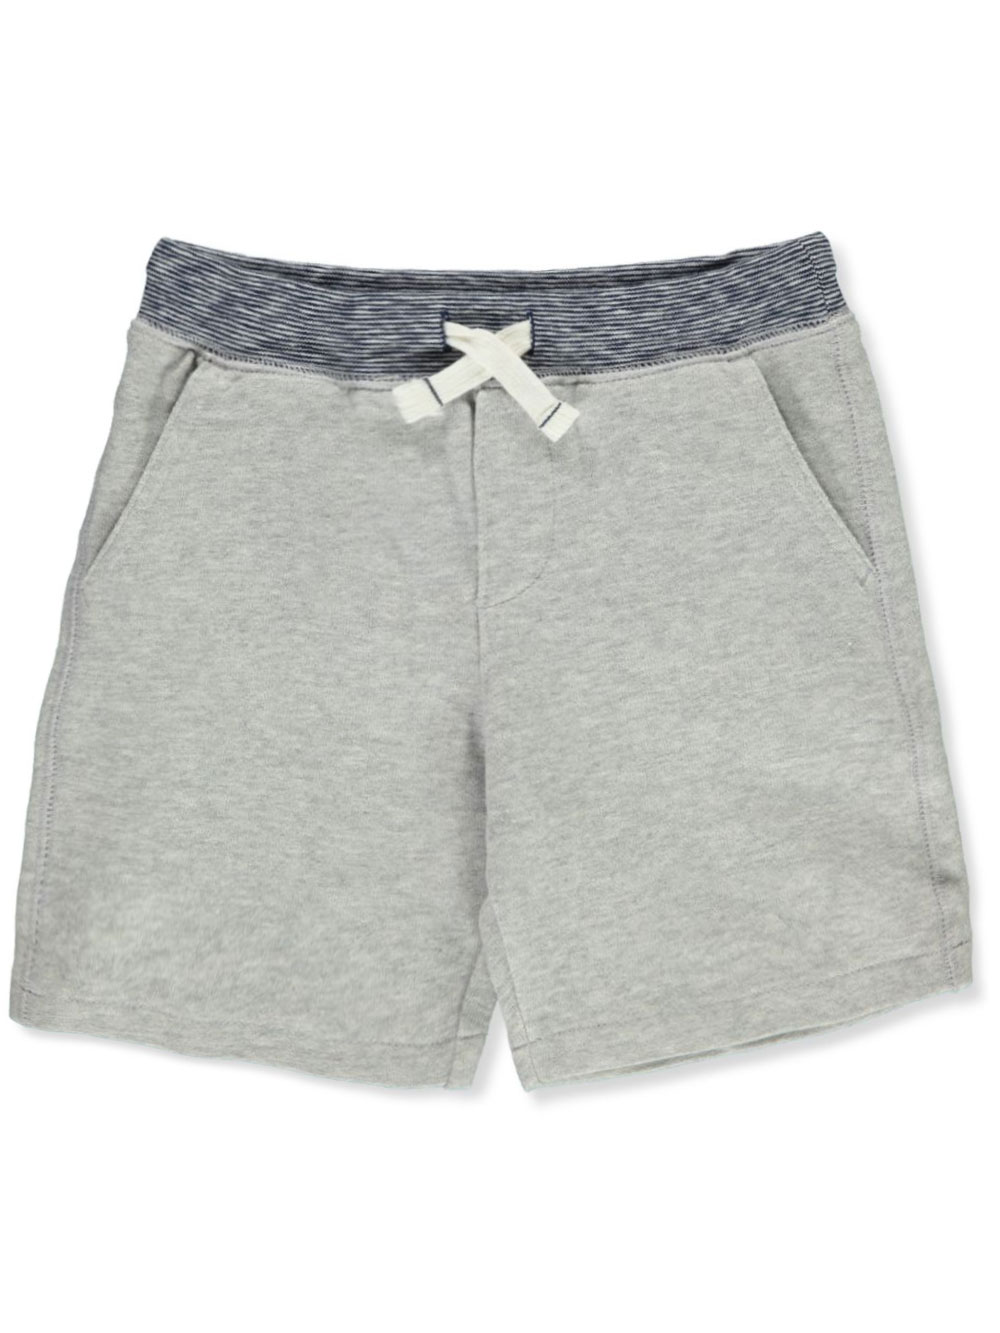 Medium Heather Gray Shorts